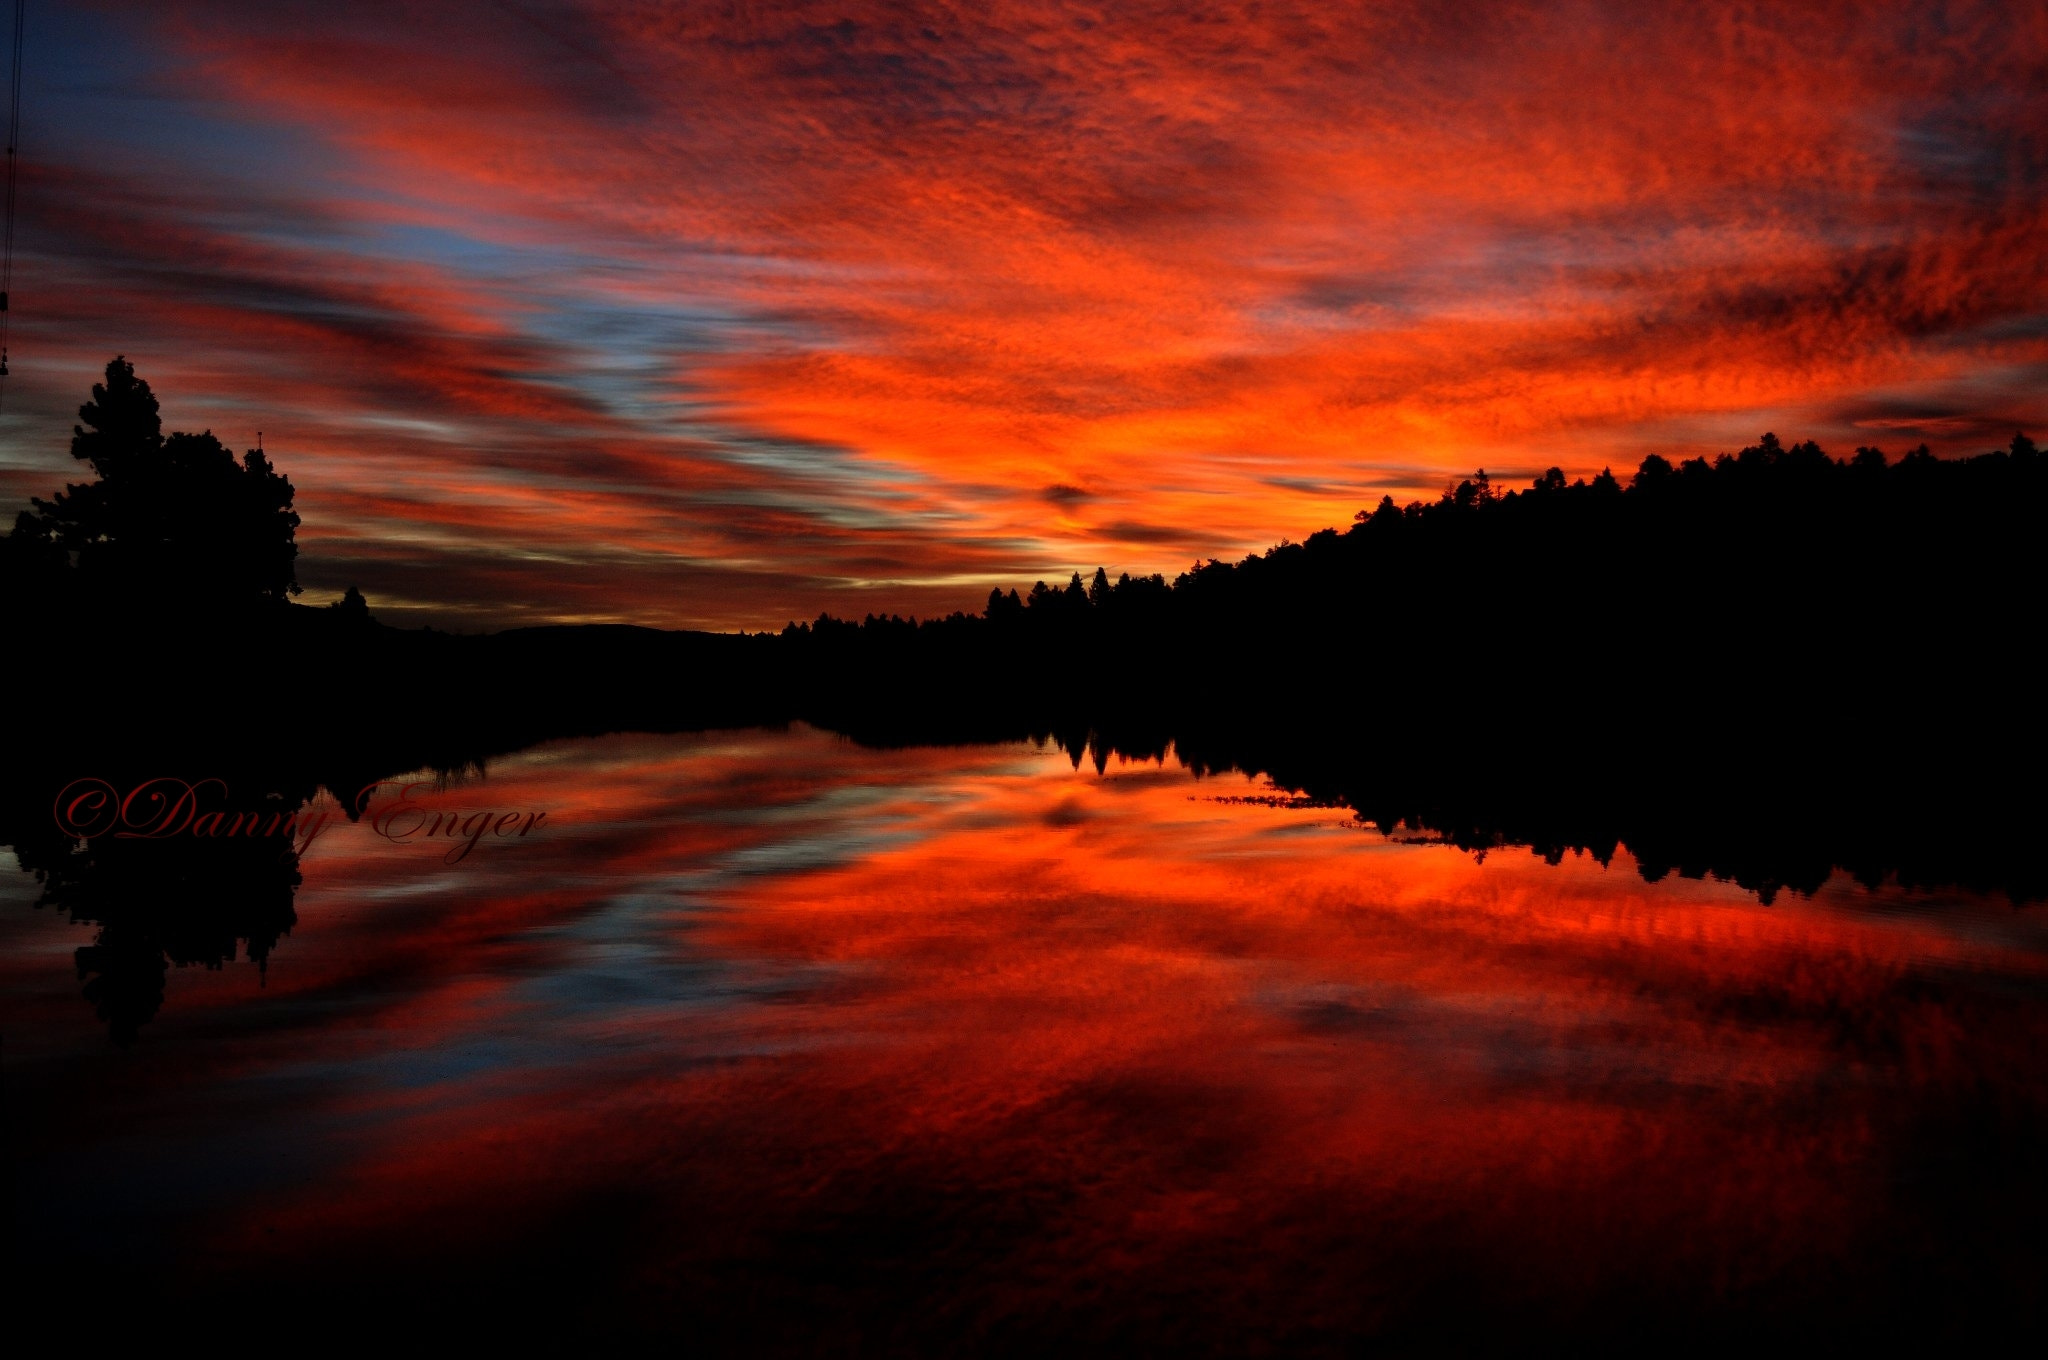 Photograph Sunrise by Danny Enger on 500px